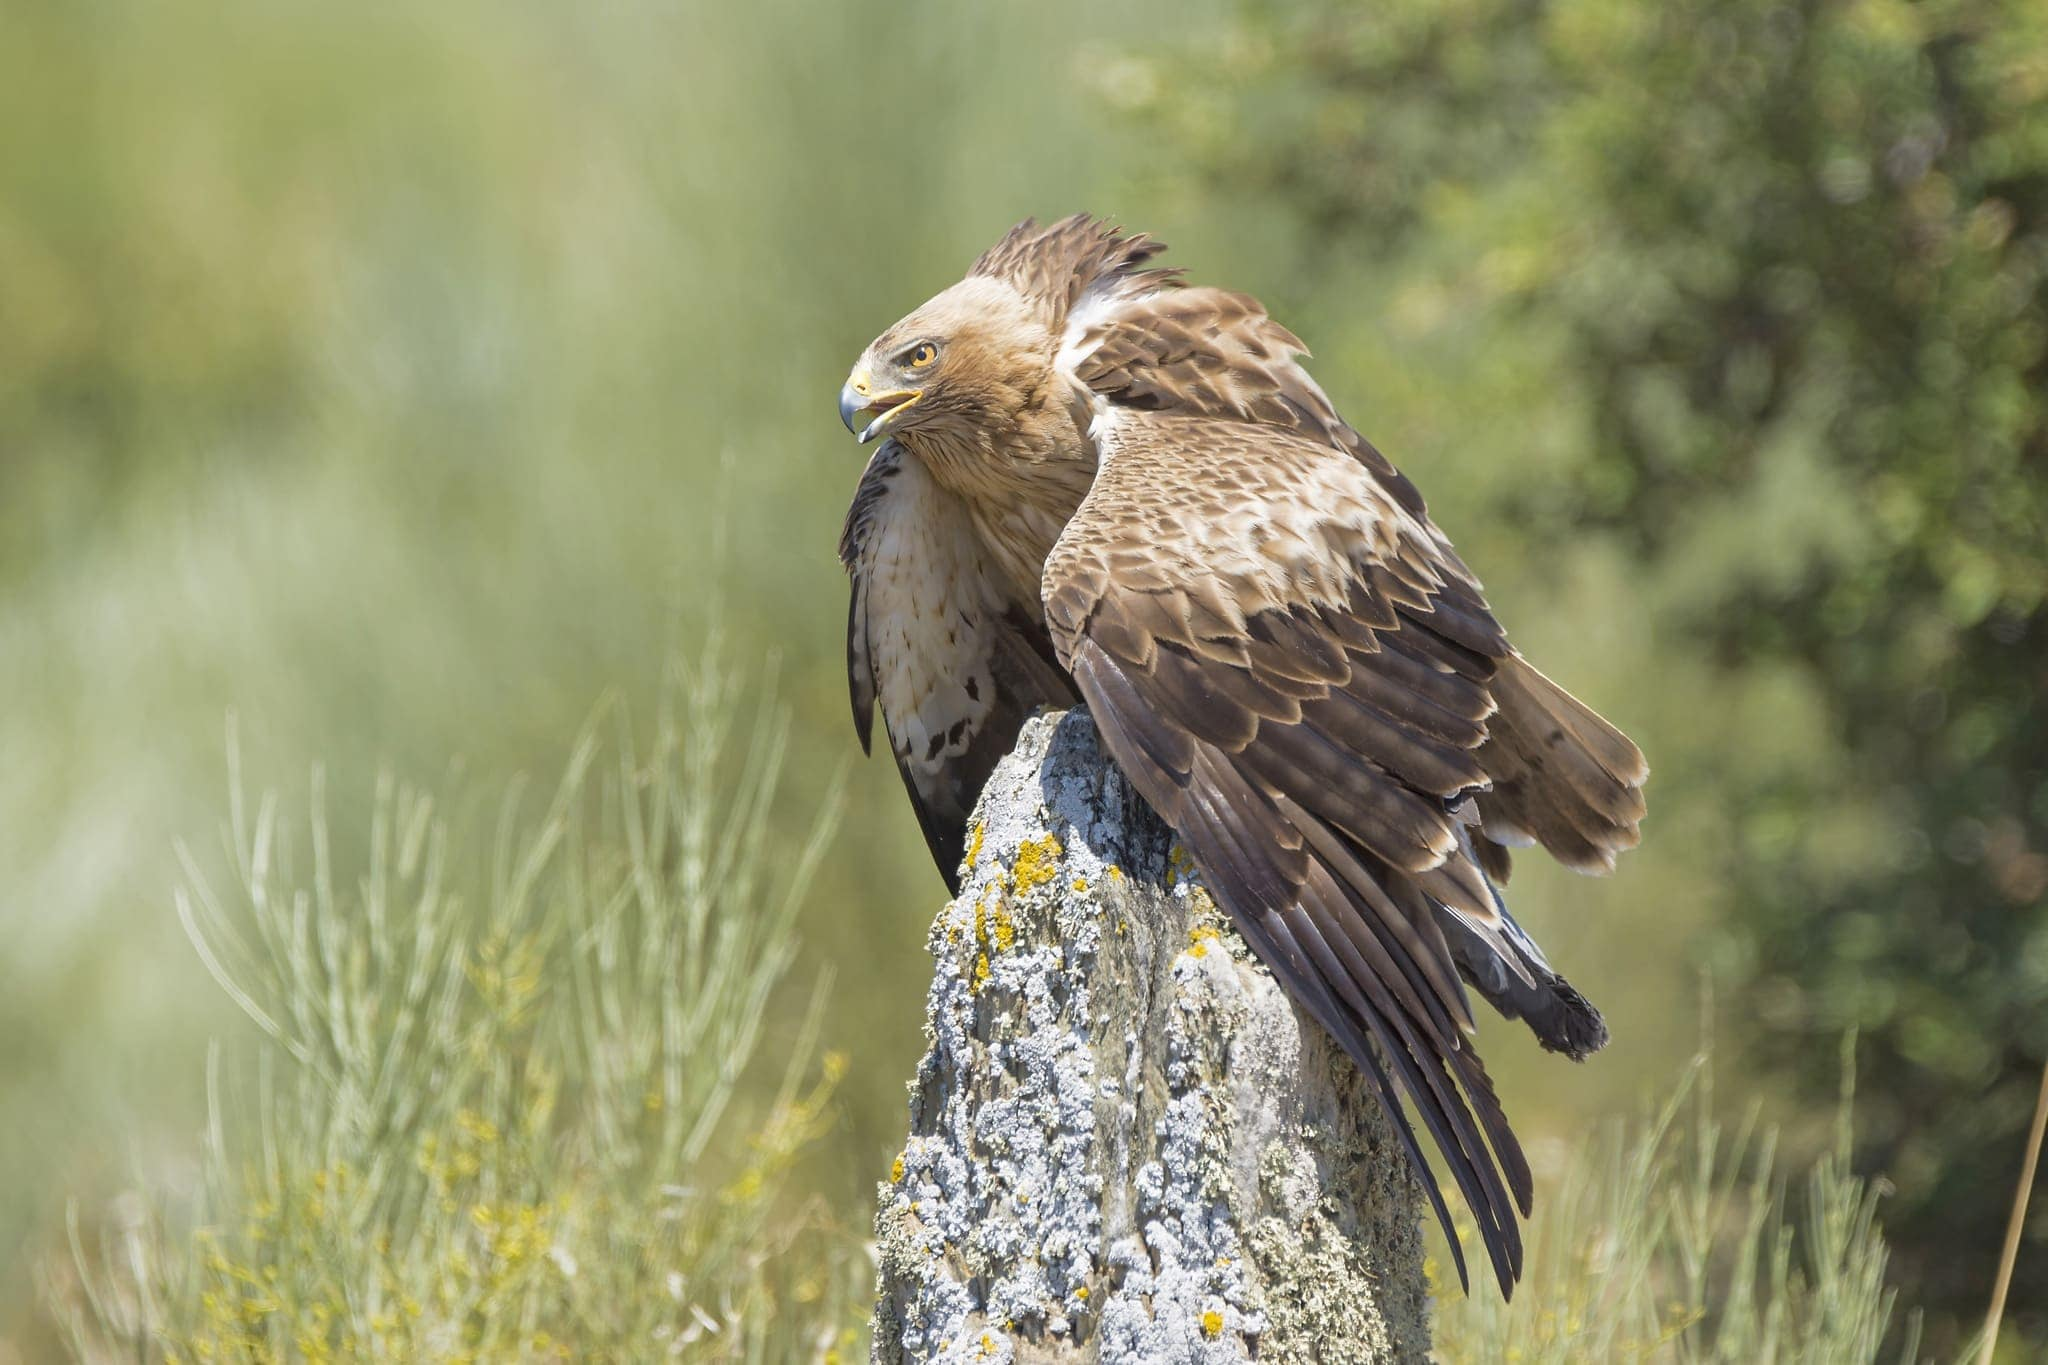 One Of The Magnificent Booted Eagles   Photographed At The Location Used For The NaturesLens Bonellis, Golden & Imperial Eagles Of Spain Photography Holiday